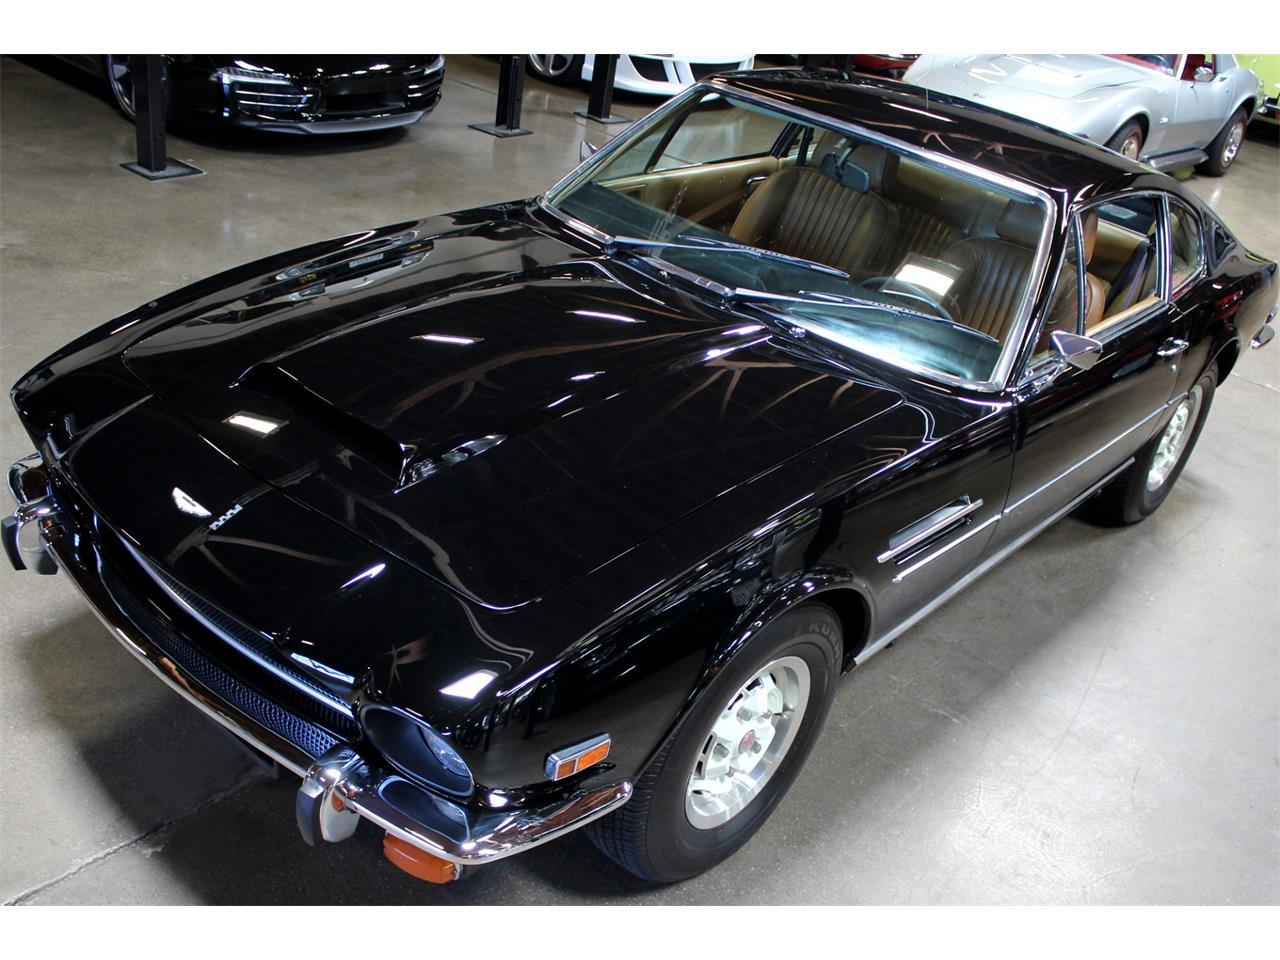 1979 Aston Martin V8 (CC-1356495) for sale in San Carlos, California